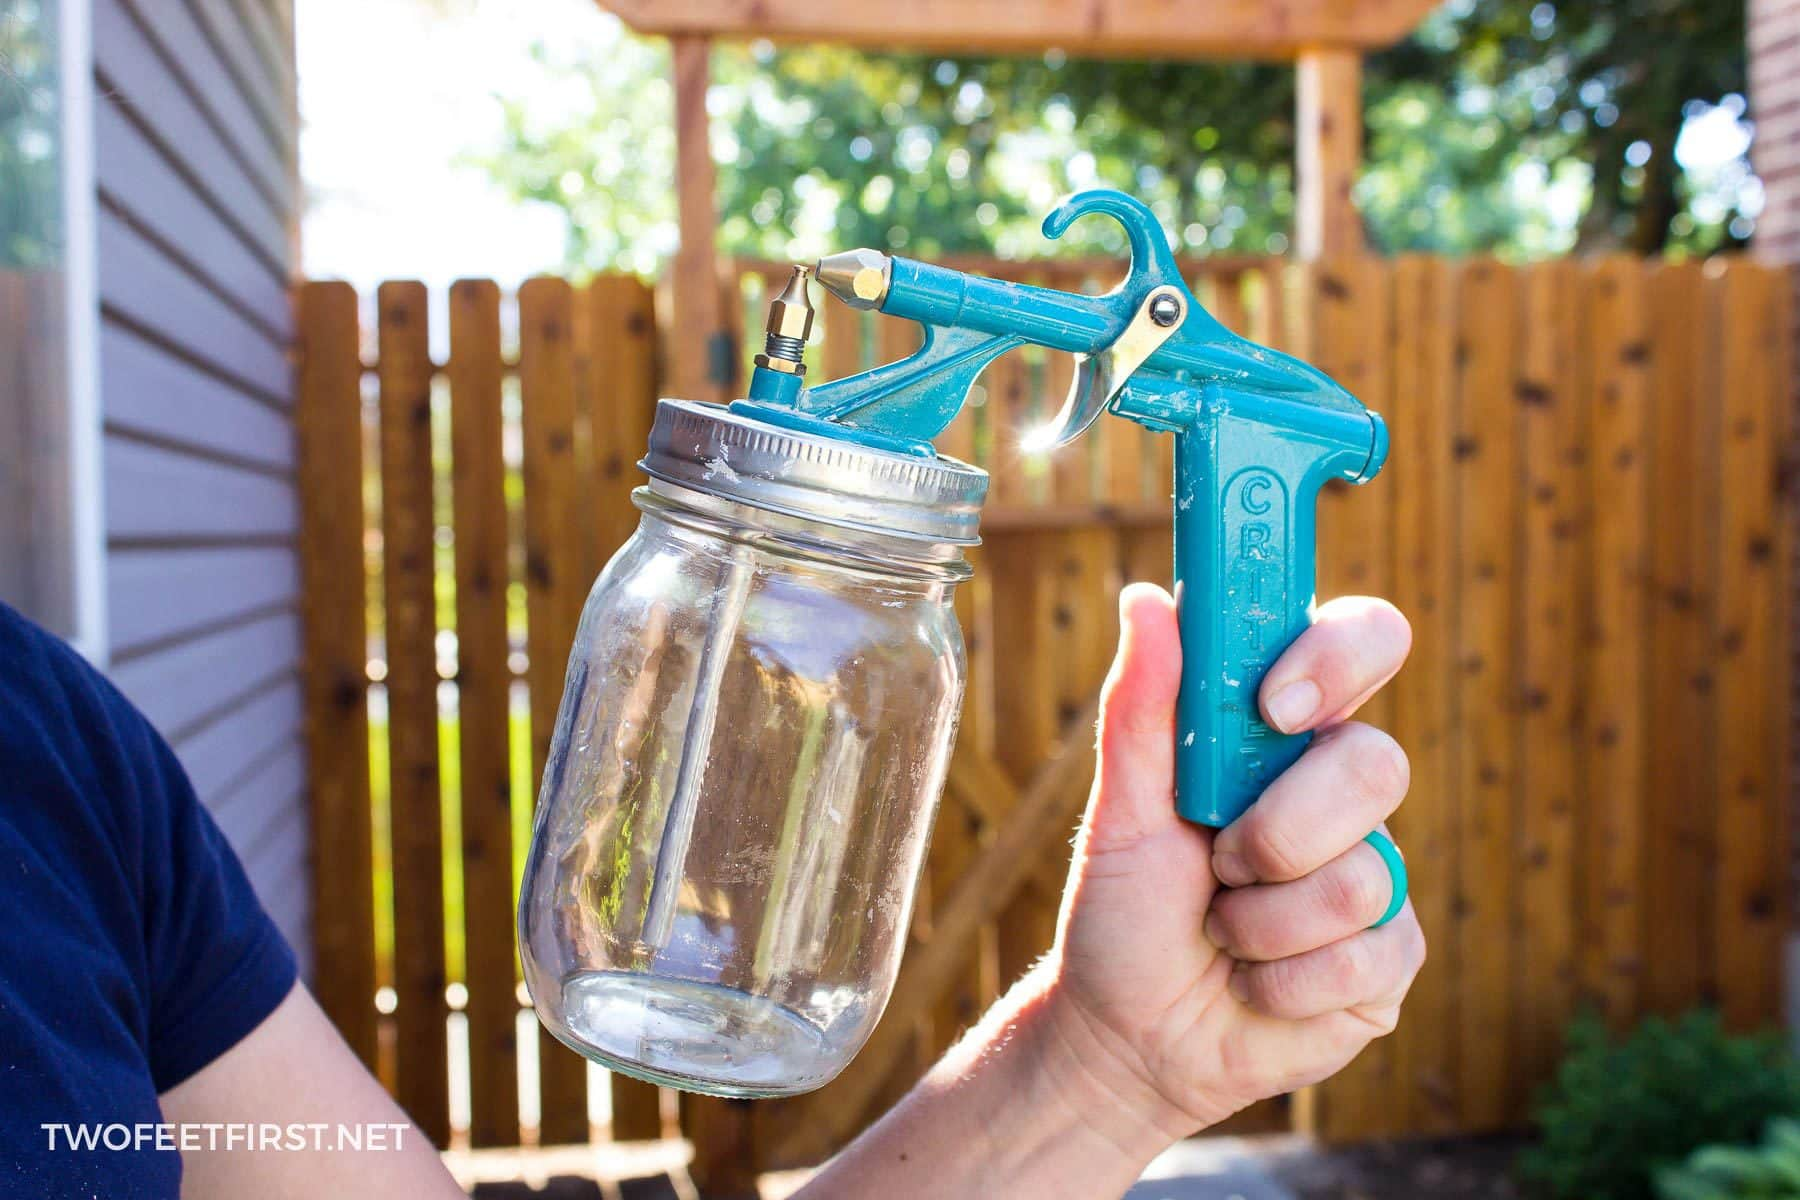 critter paint sprayer used to spray stain on fence